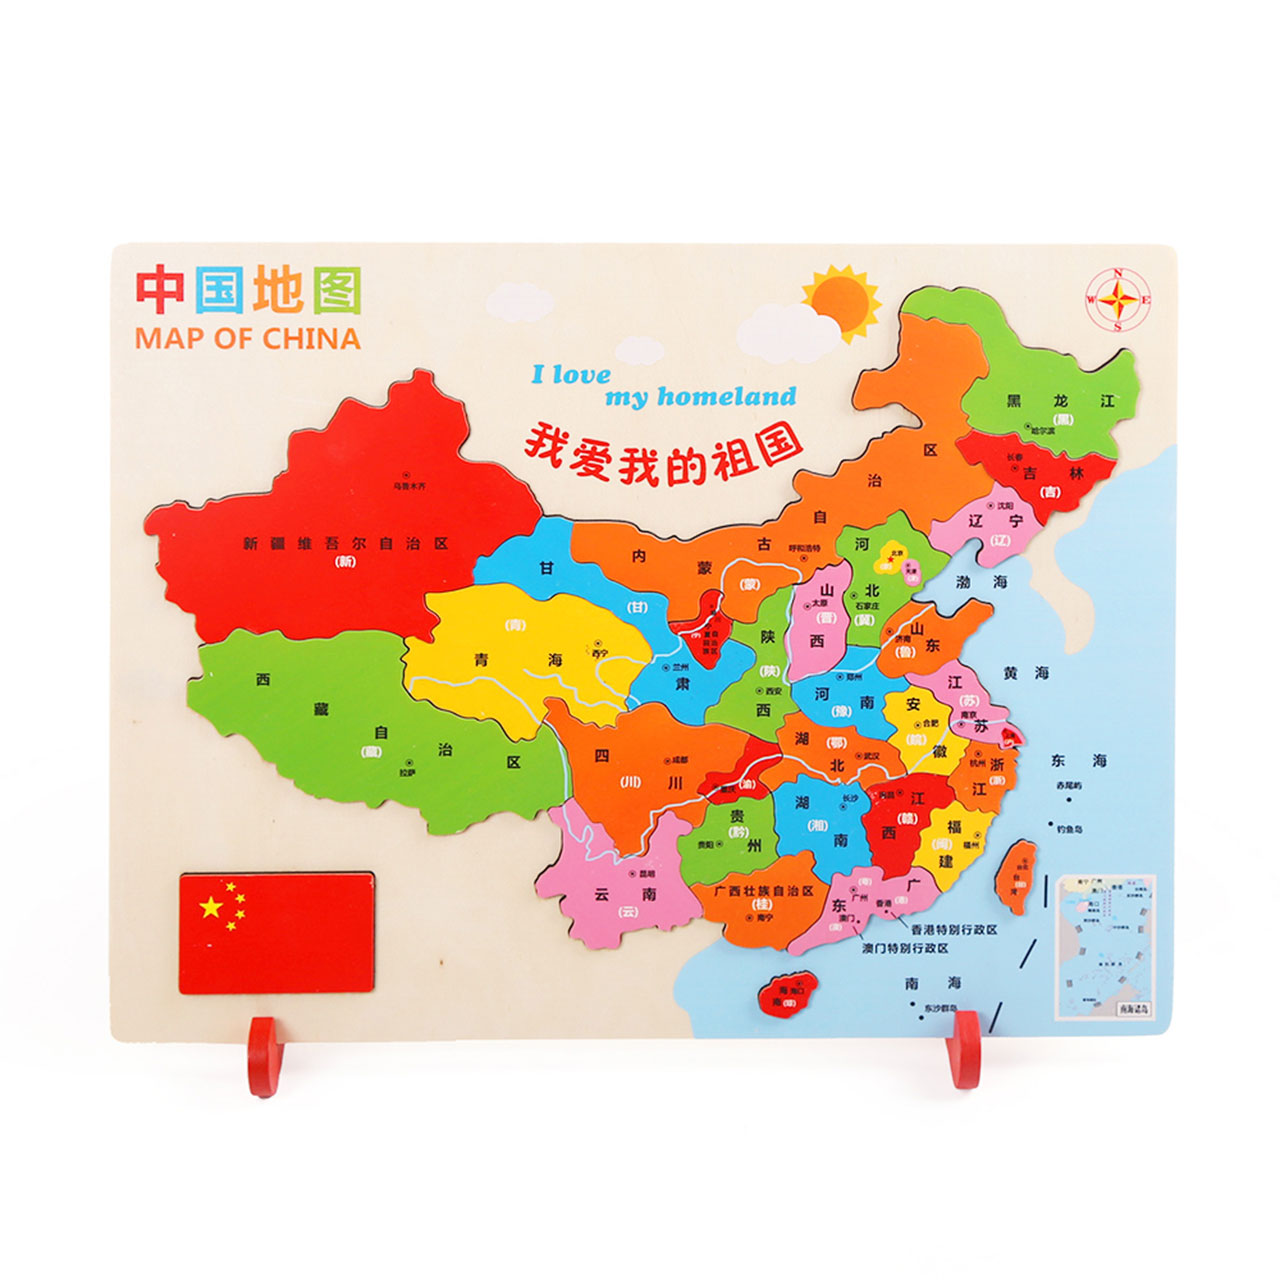 China world map puzzle children boys women assembled wood 4 5 8 3 6 china world map puzzle children boys women assembled wood 4 5 8 3 6 years old early learning educational toys gumiabroncs Gallery